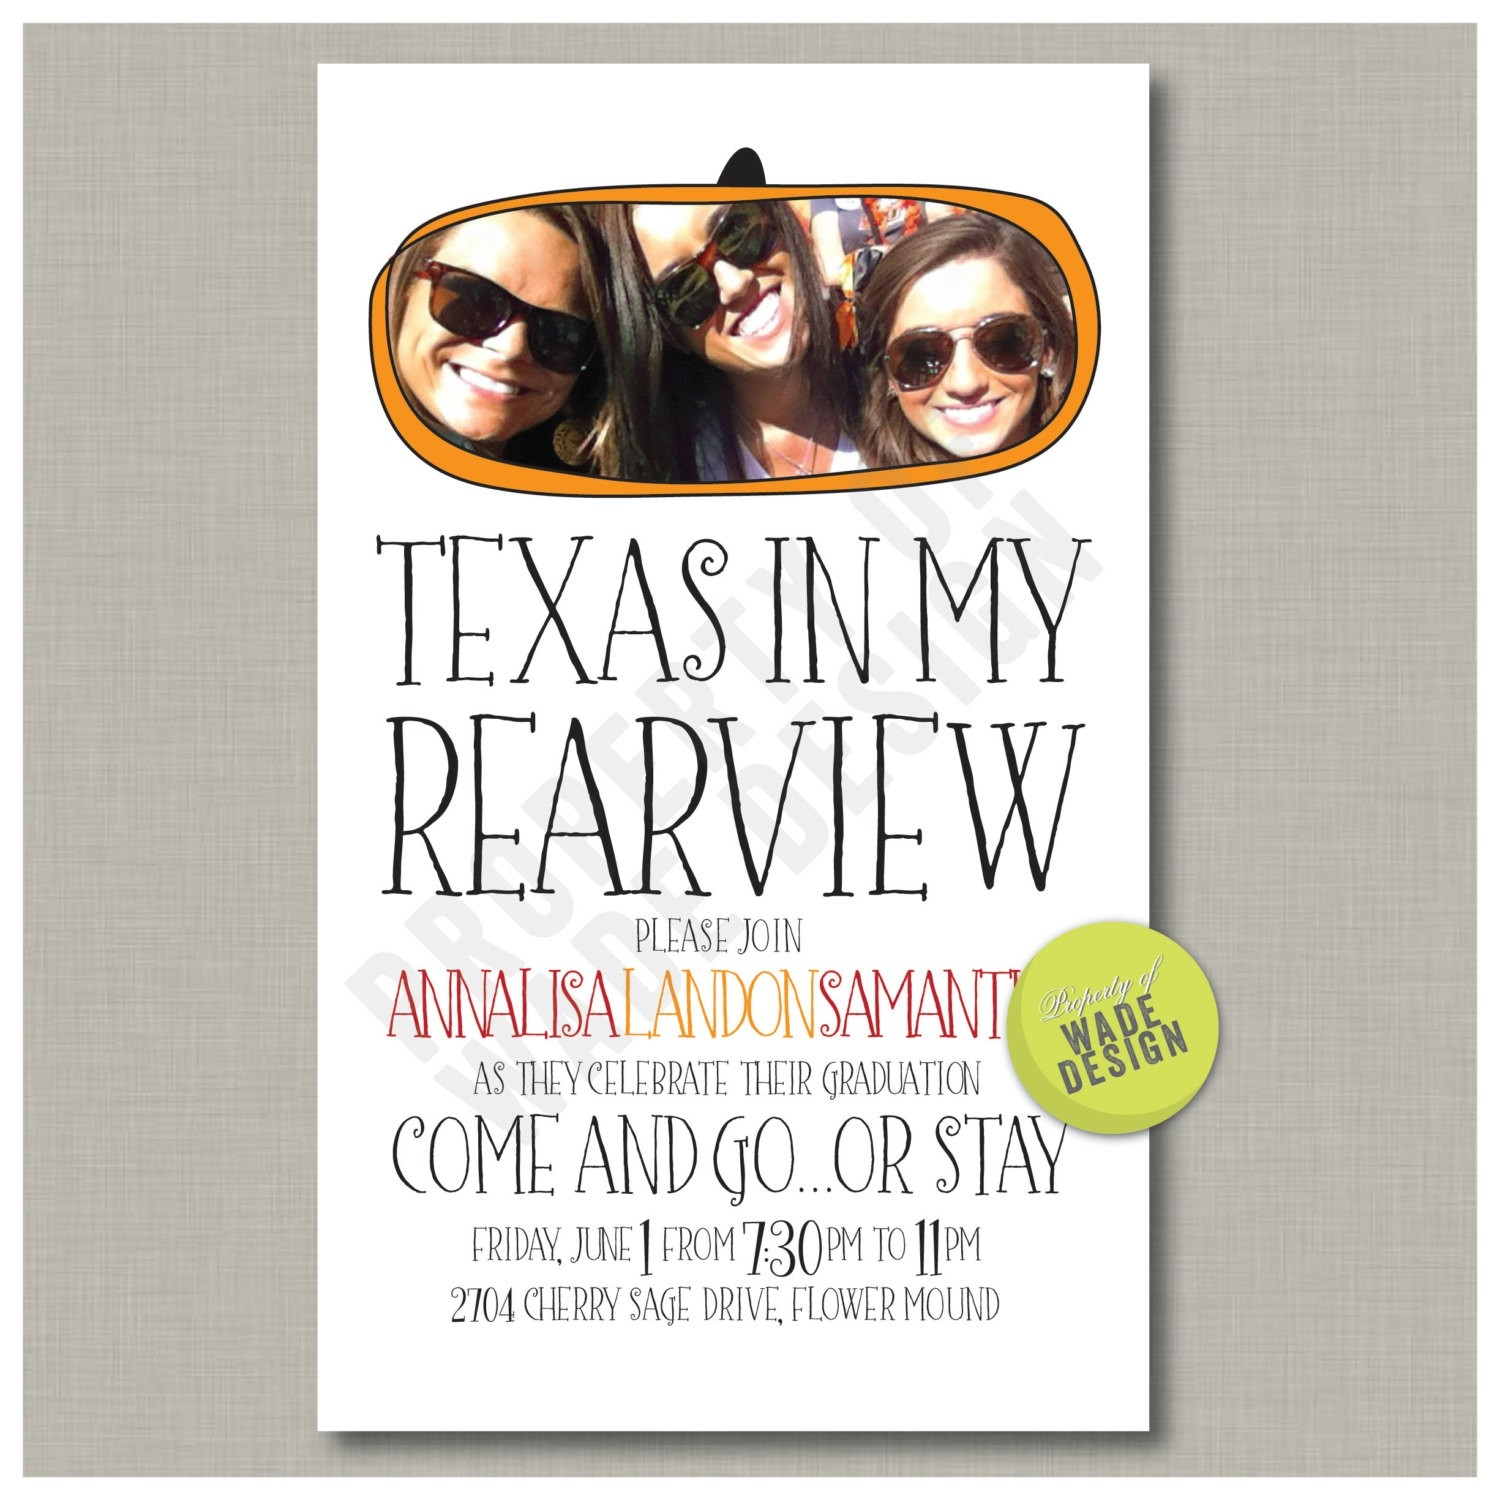 10 Awesome Ideas For A Going Away Party invitation wording for moving party refrence chic going away party 2020